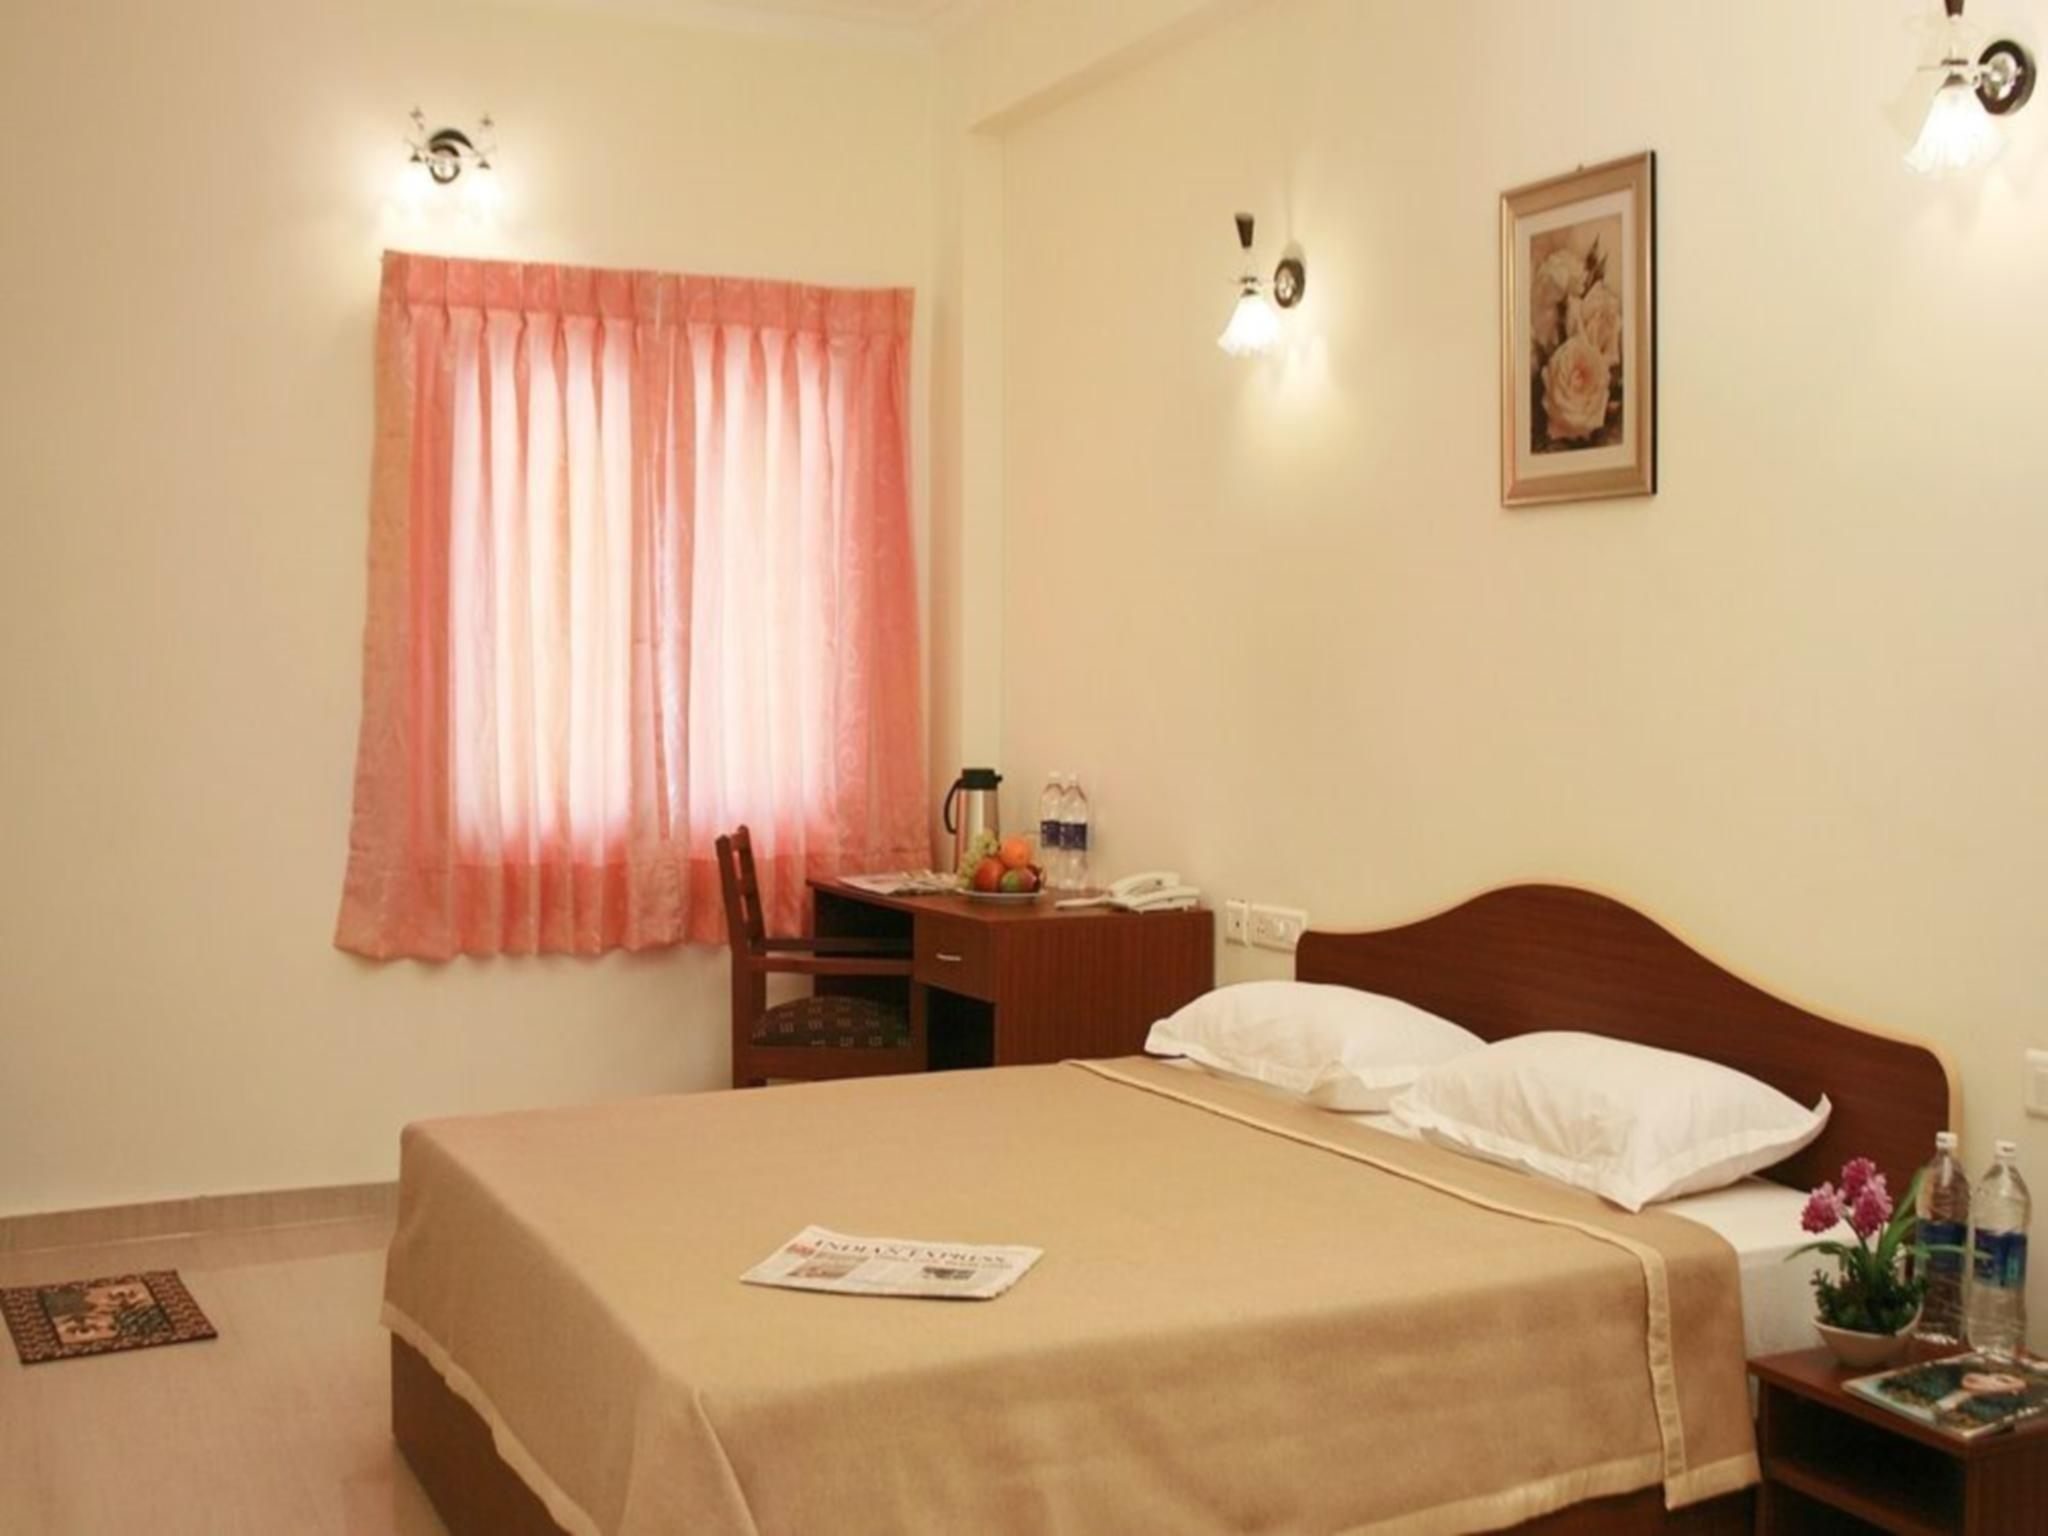 Prince-huone ilmastoinnilla ja aamiaisella (Prince Room With Air Conditioning and Breakfast Only)